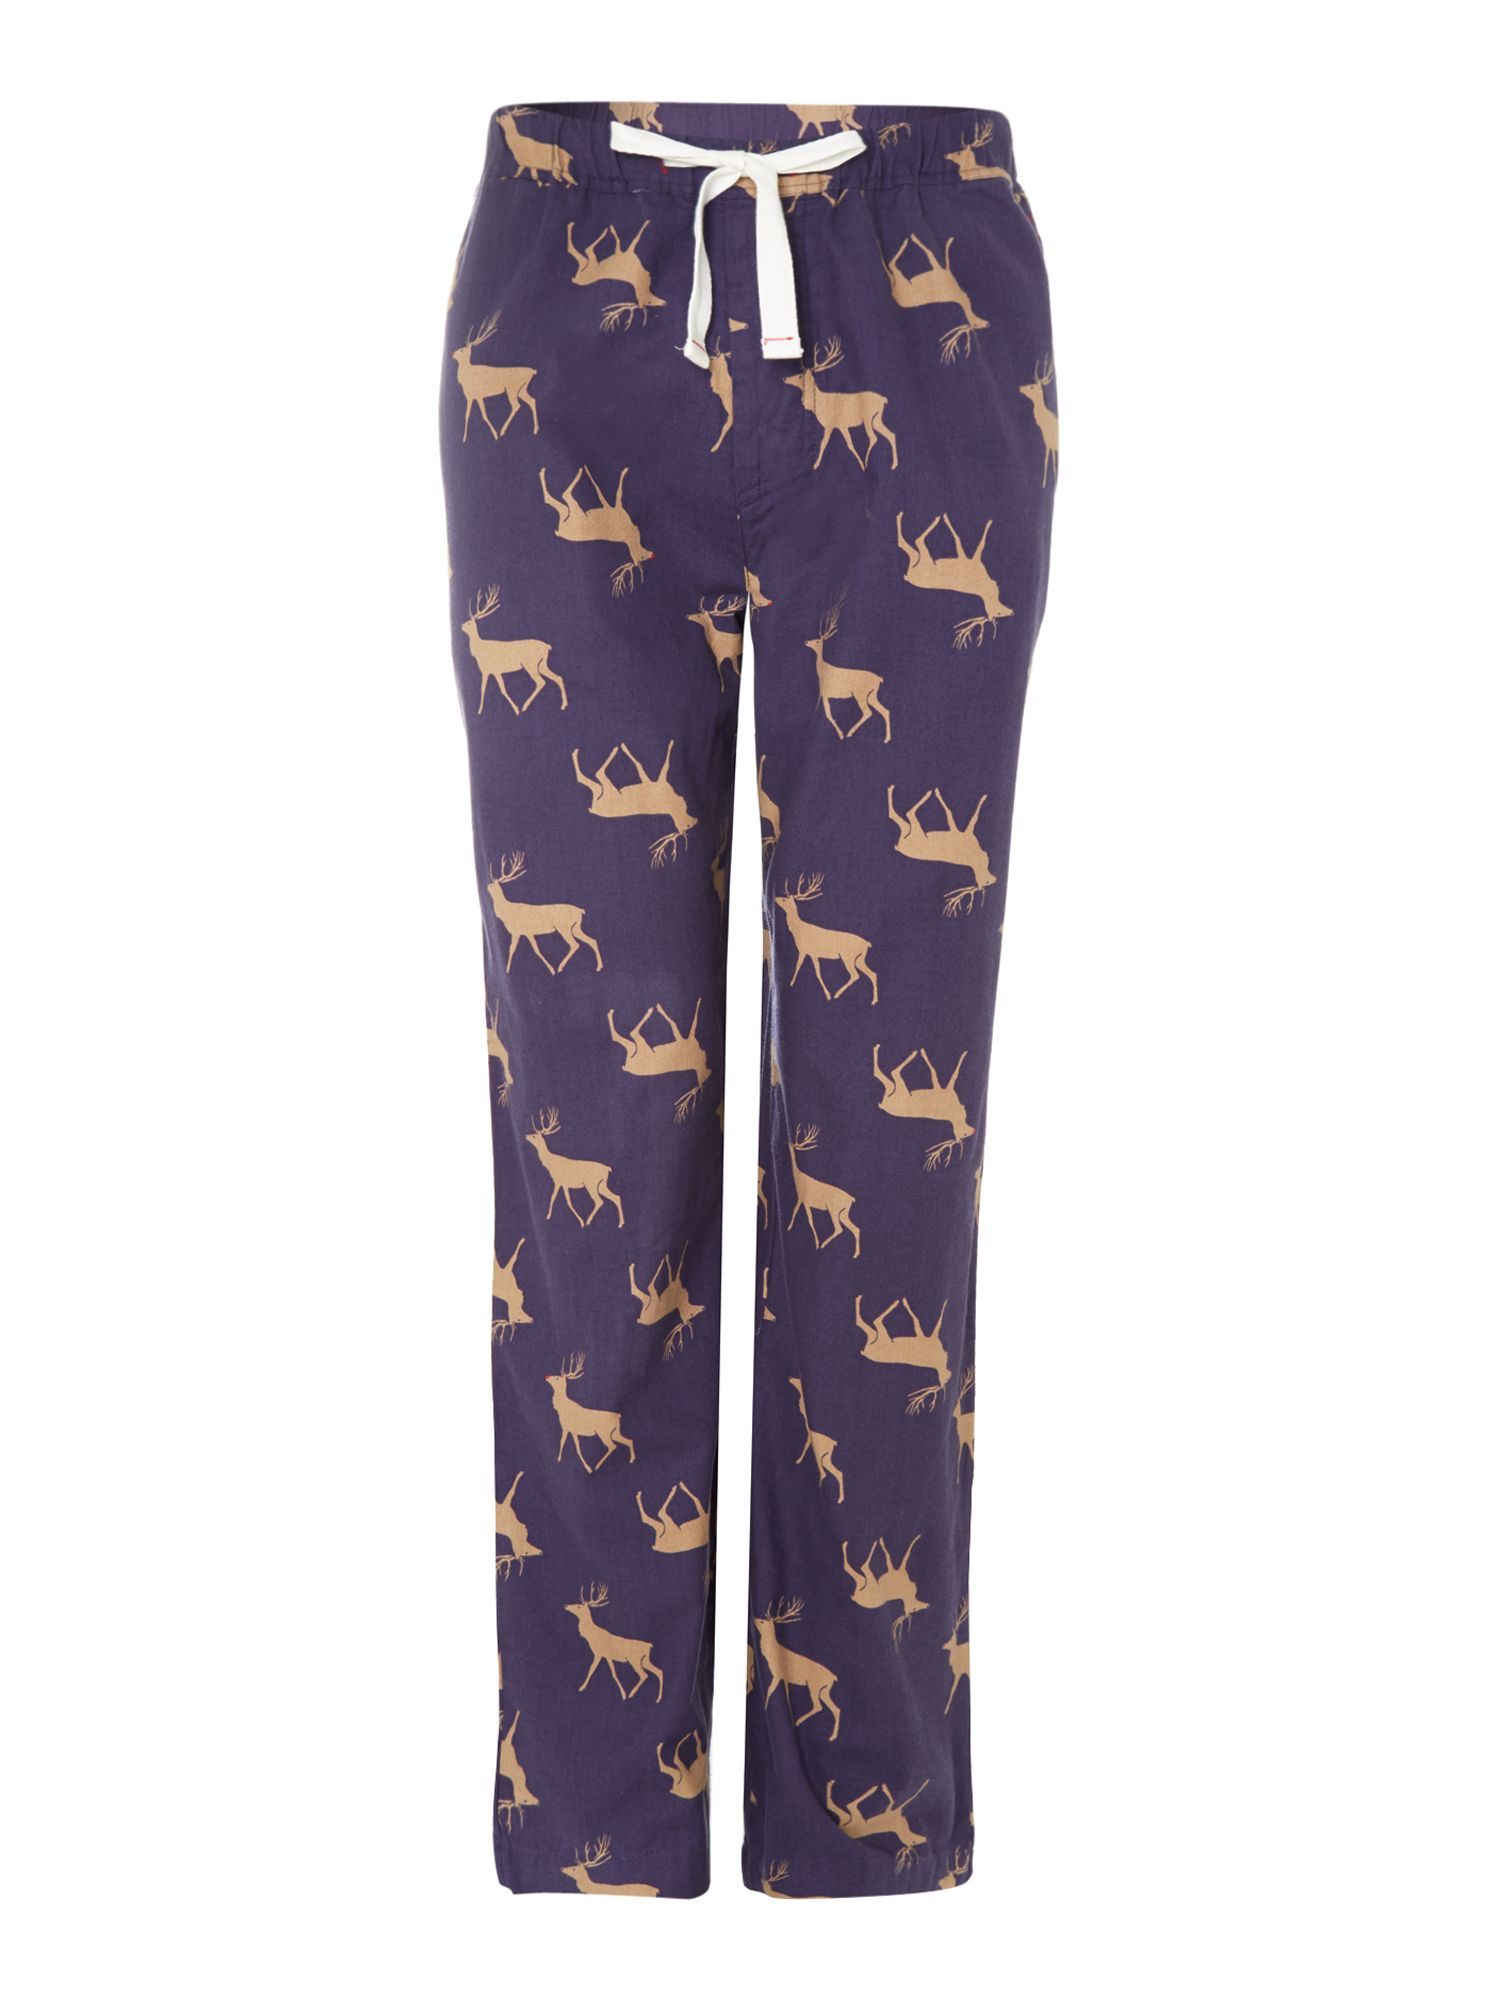 Selwyn reindeer pj bottoms